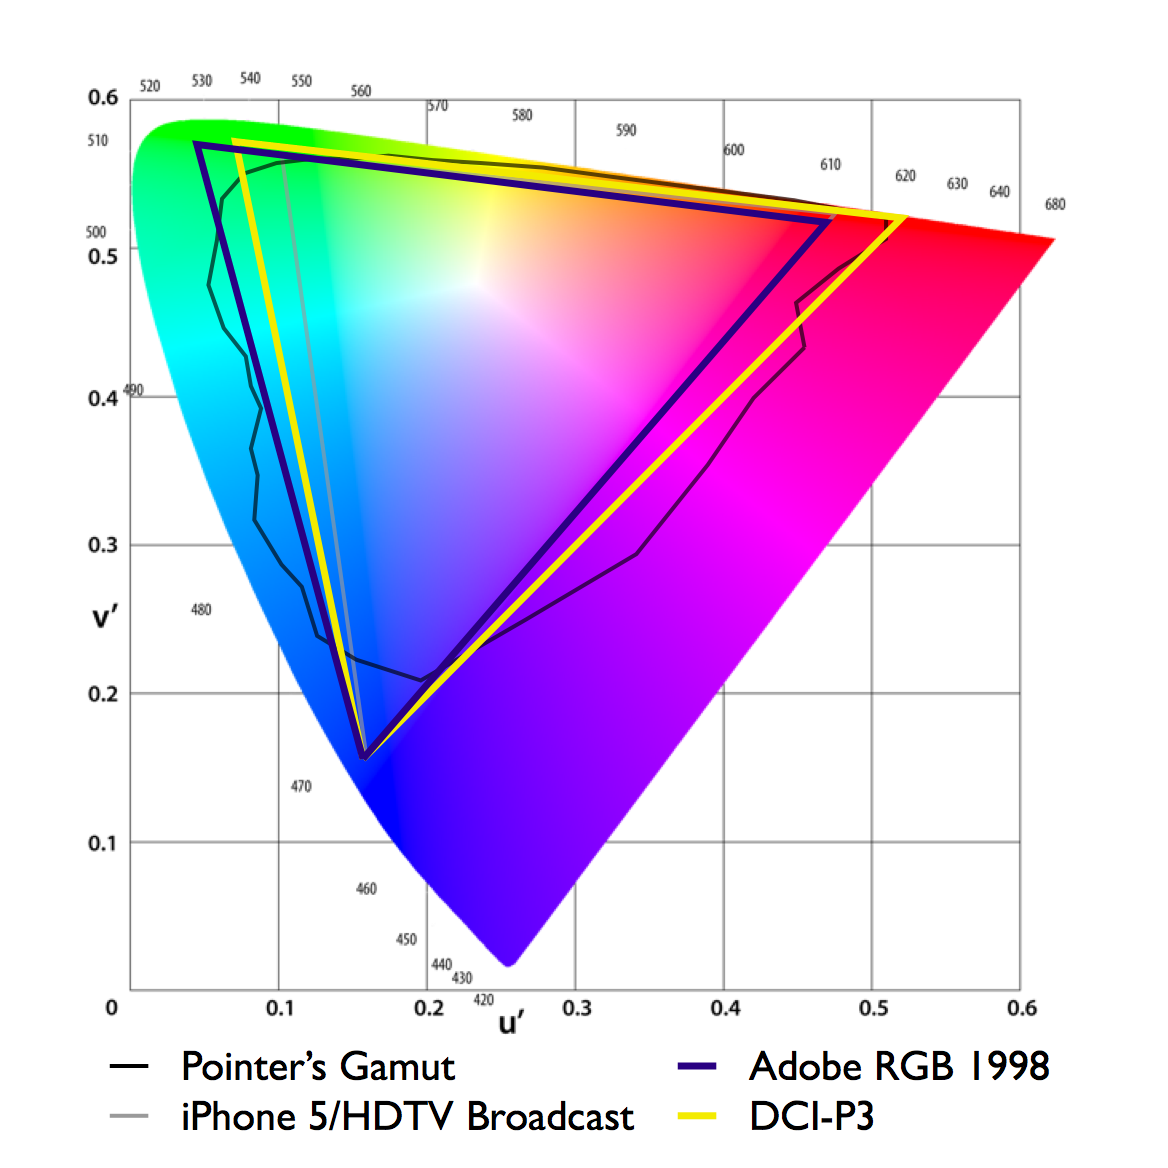 Current wide color gamut standards Adobe RGB 1998, commonly used by pro photographers and designers, and DCI-P3, used in digital cinema, compared to Pointer's gamut in CIE 1976